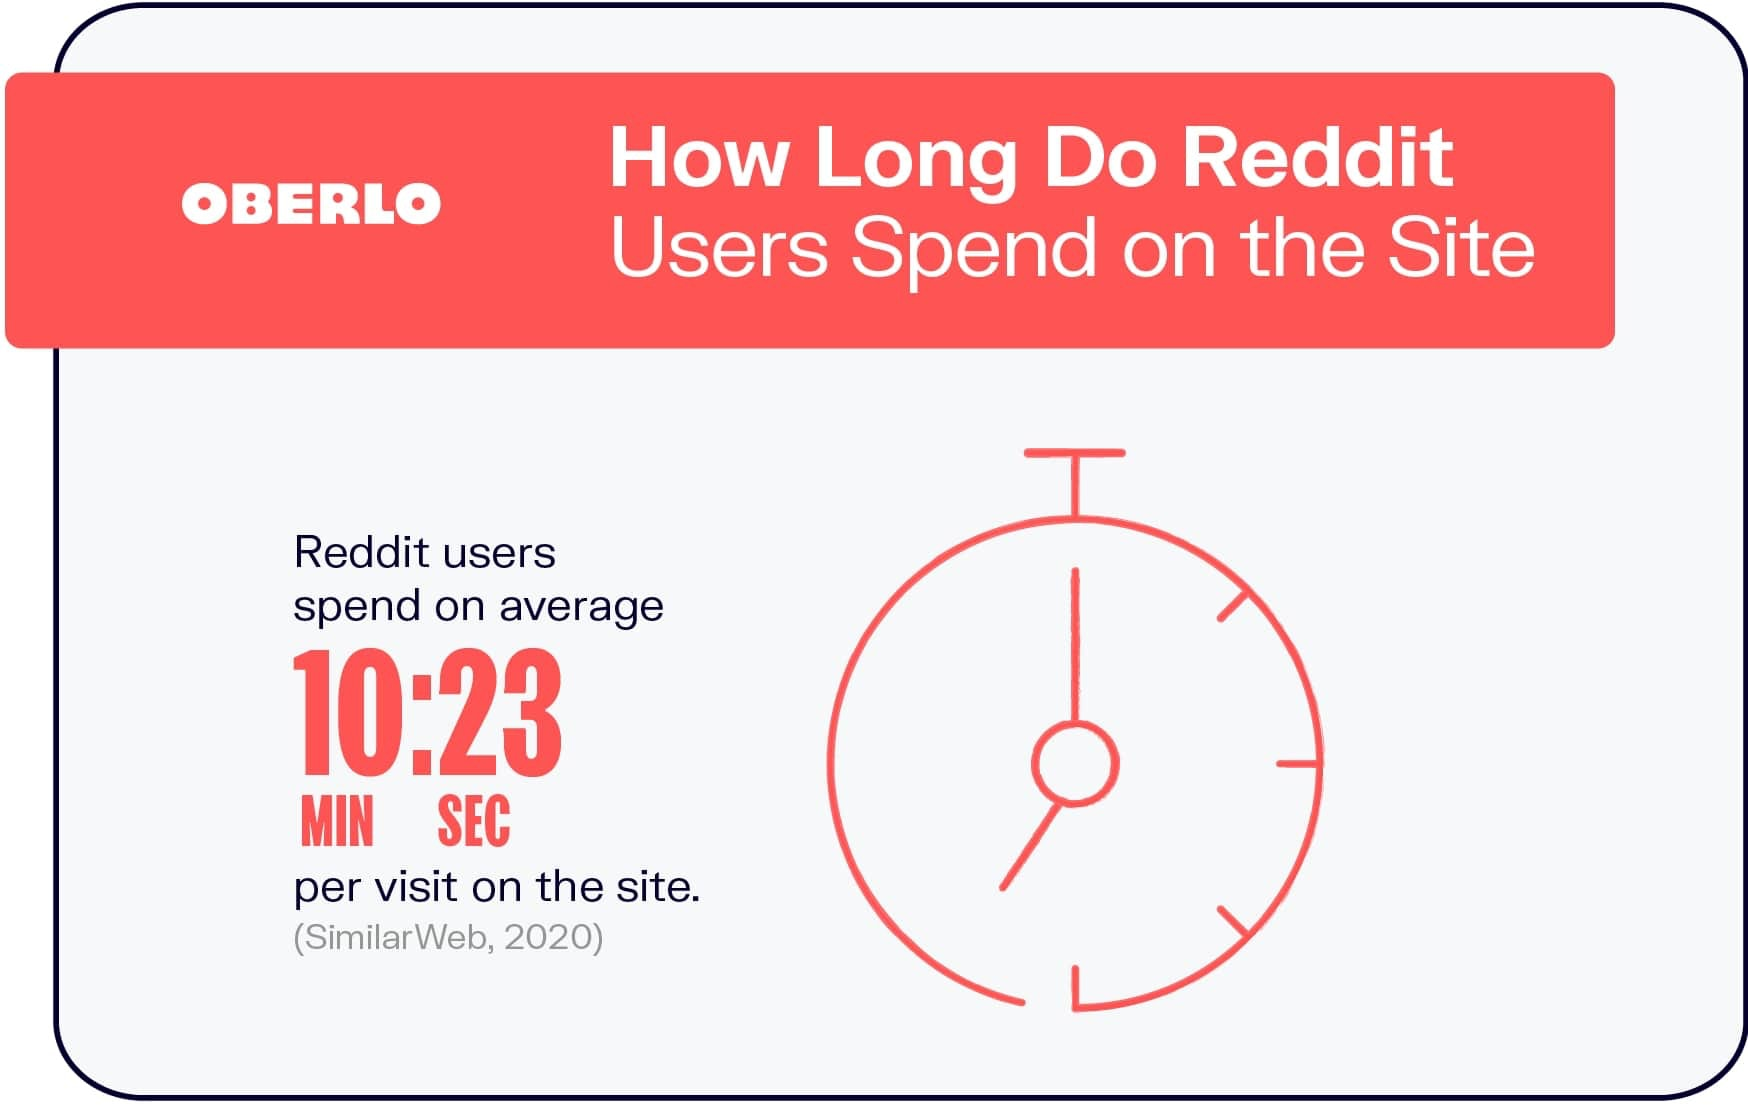 How Long Do Reddit Users Spend on the Site